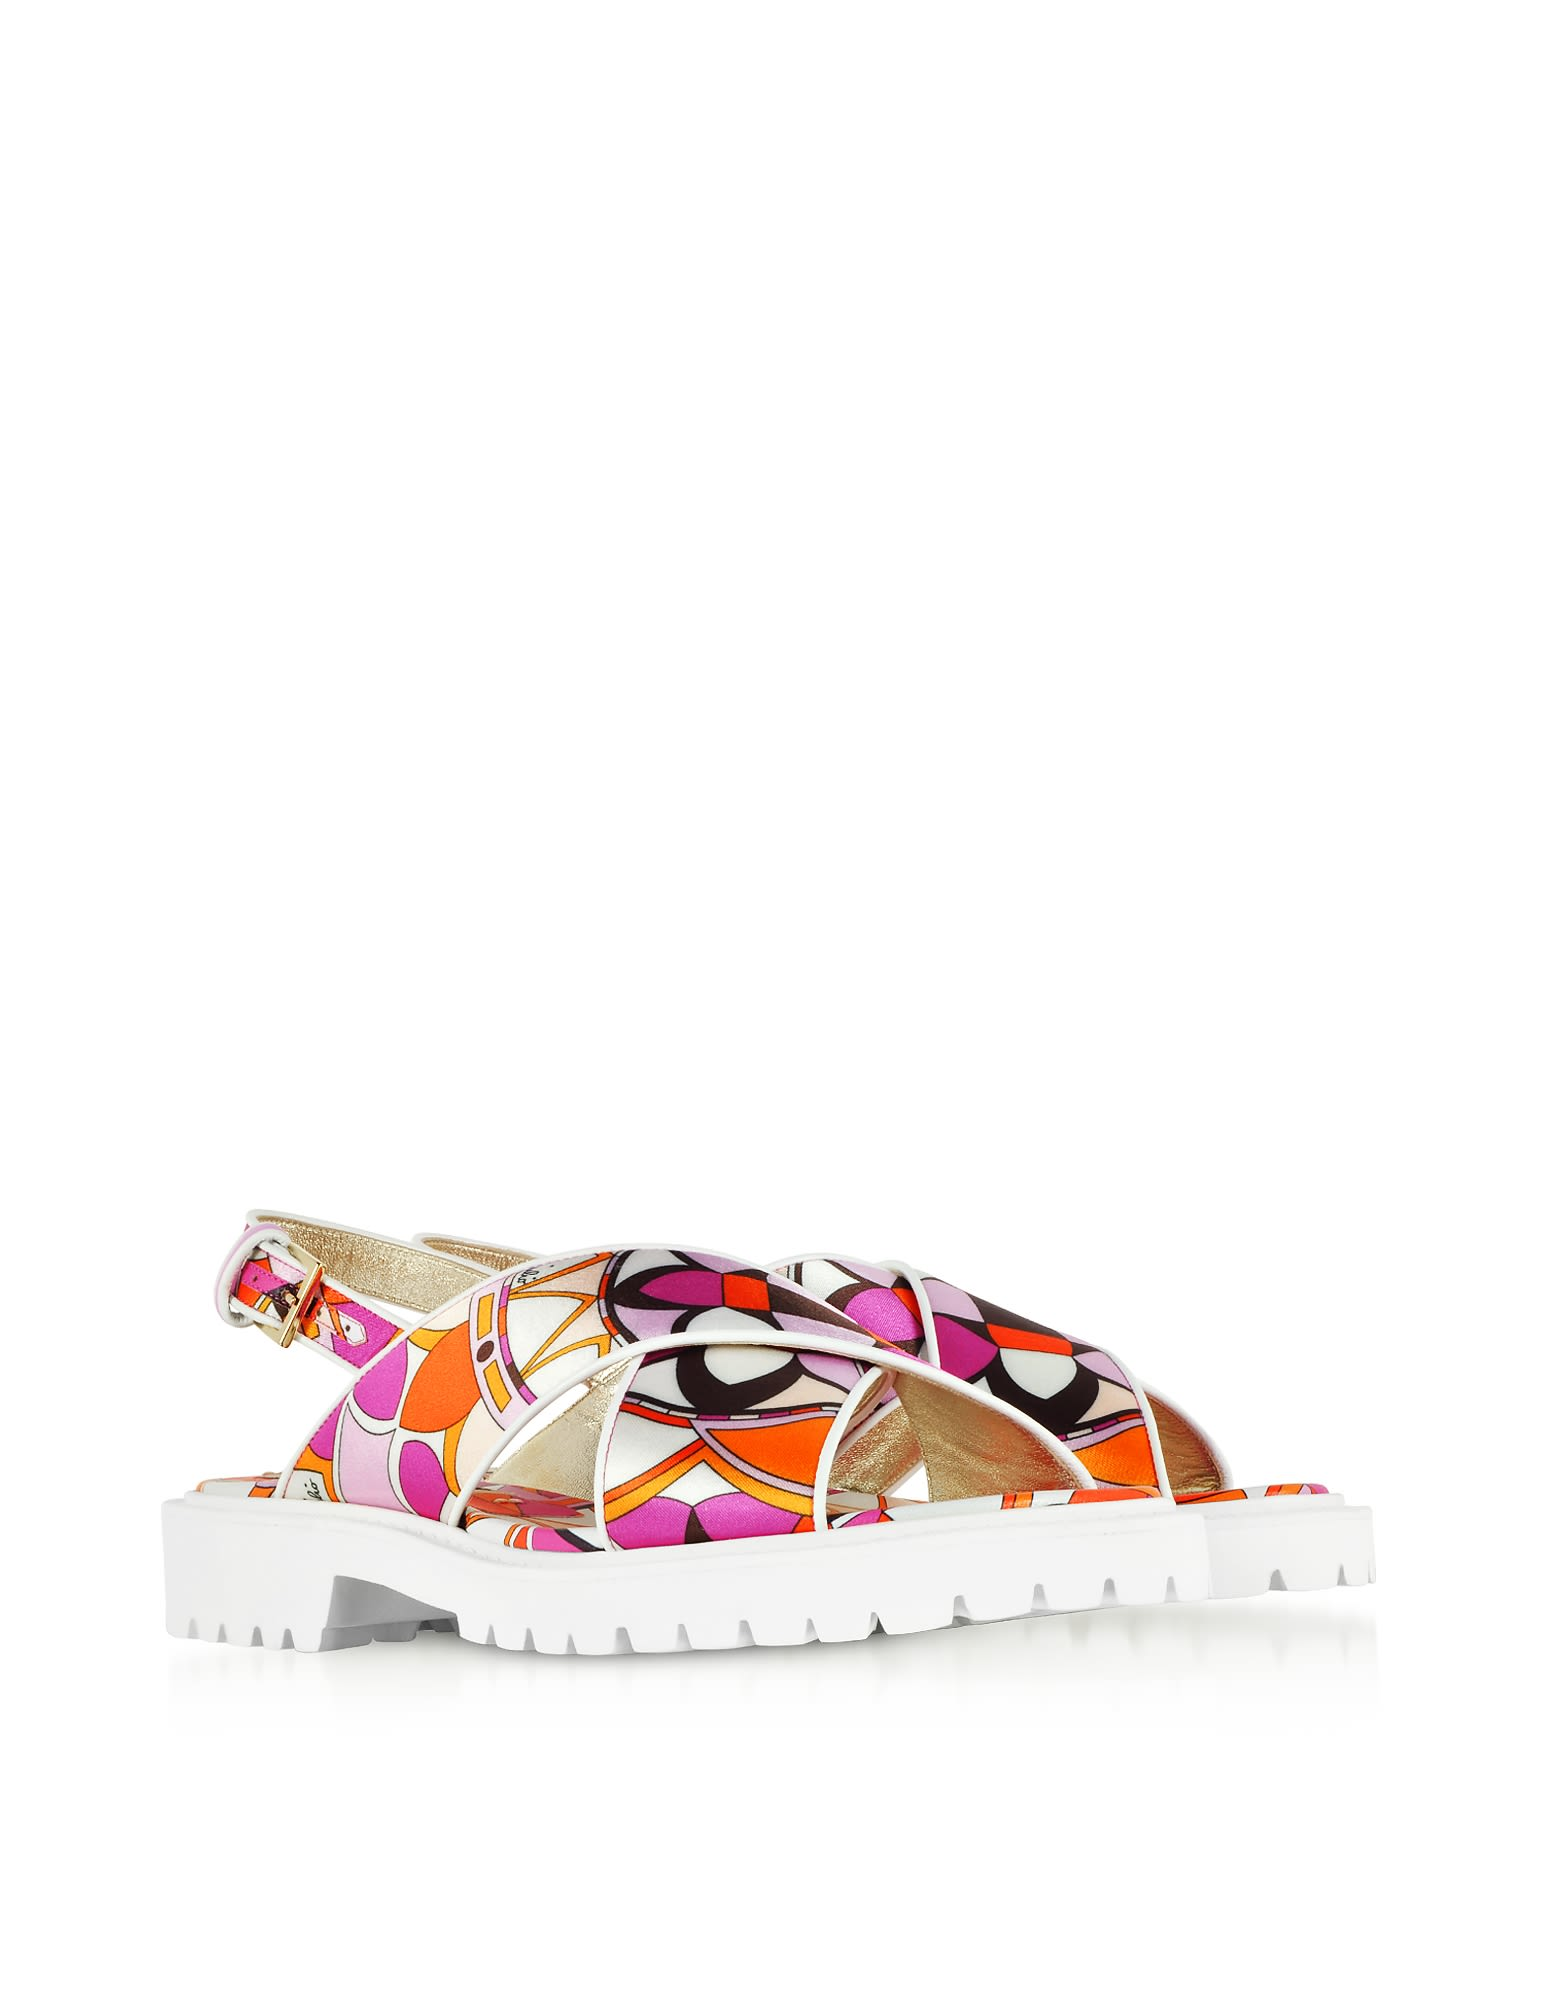 Emilio Pucci Designer Shoes, Arenal Print Twill Silk Sandals